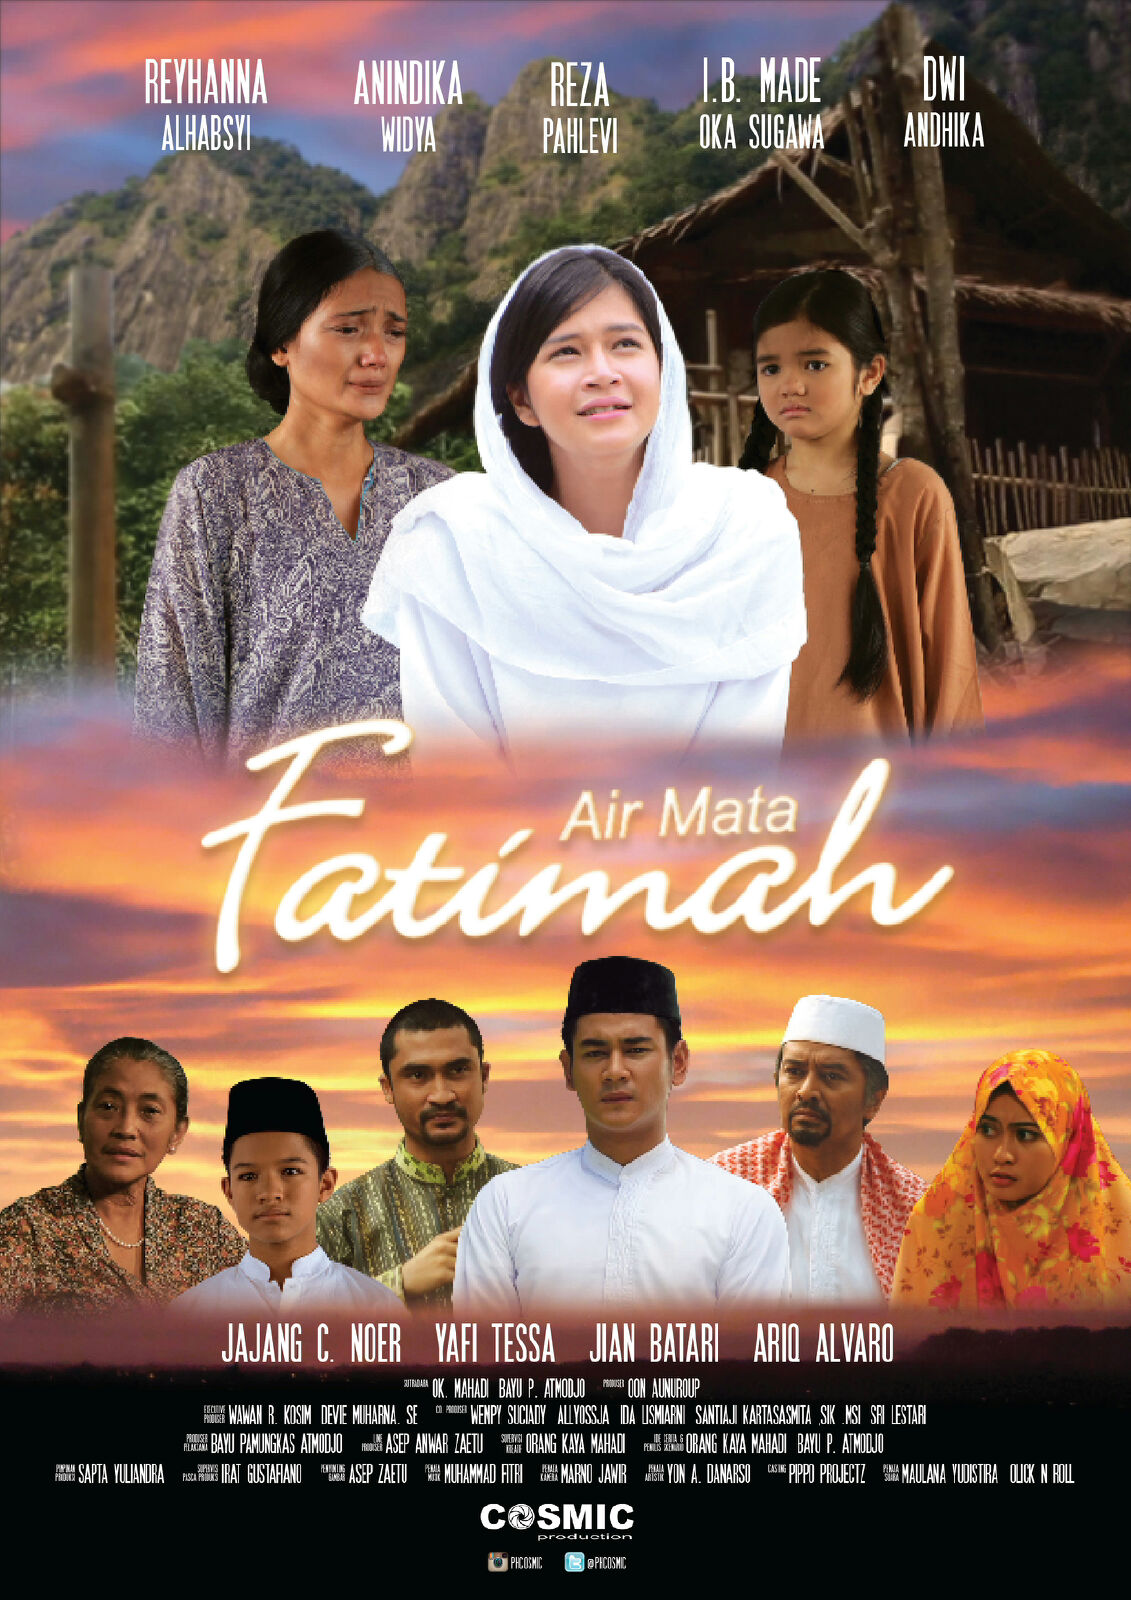 Nonton Air mata fatimah (2015) Full Movie